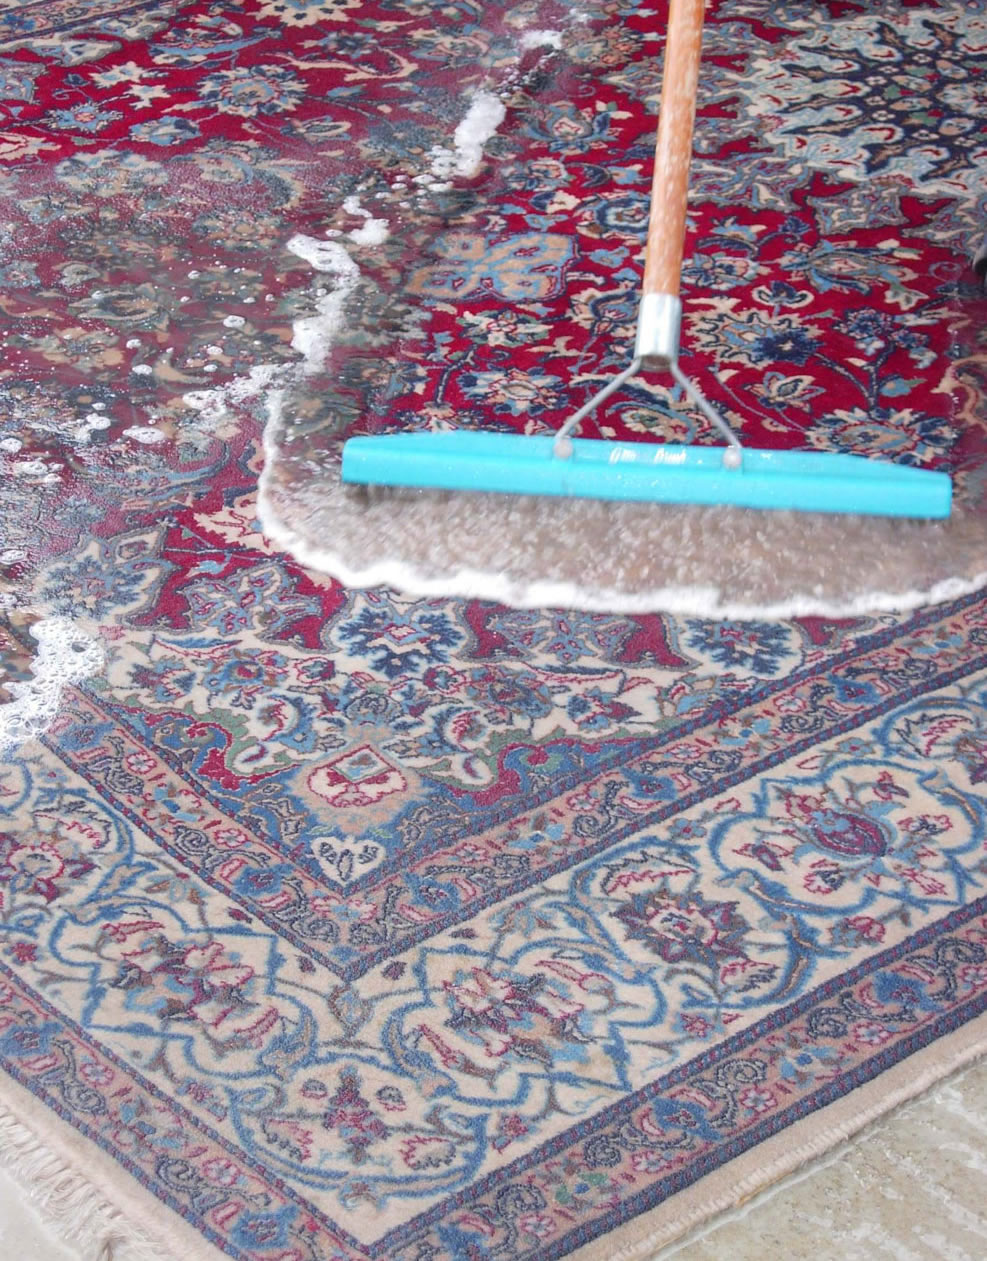 Antique Carpet Cleaning